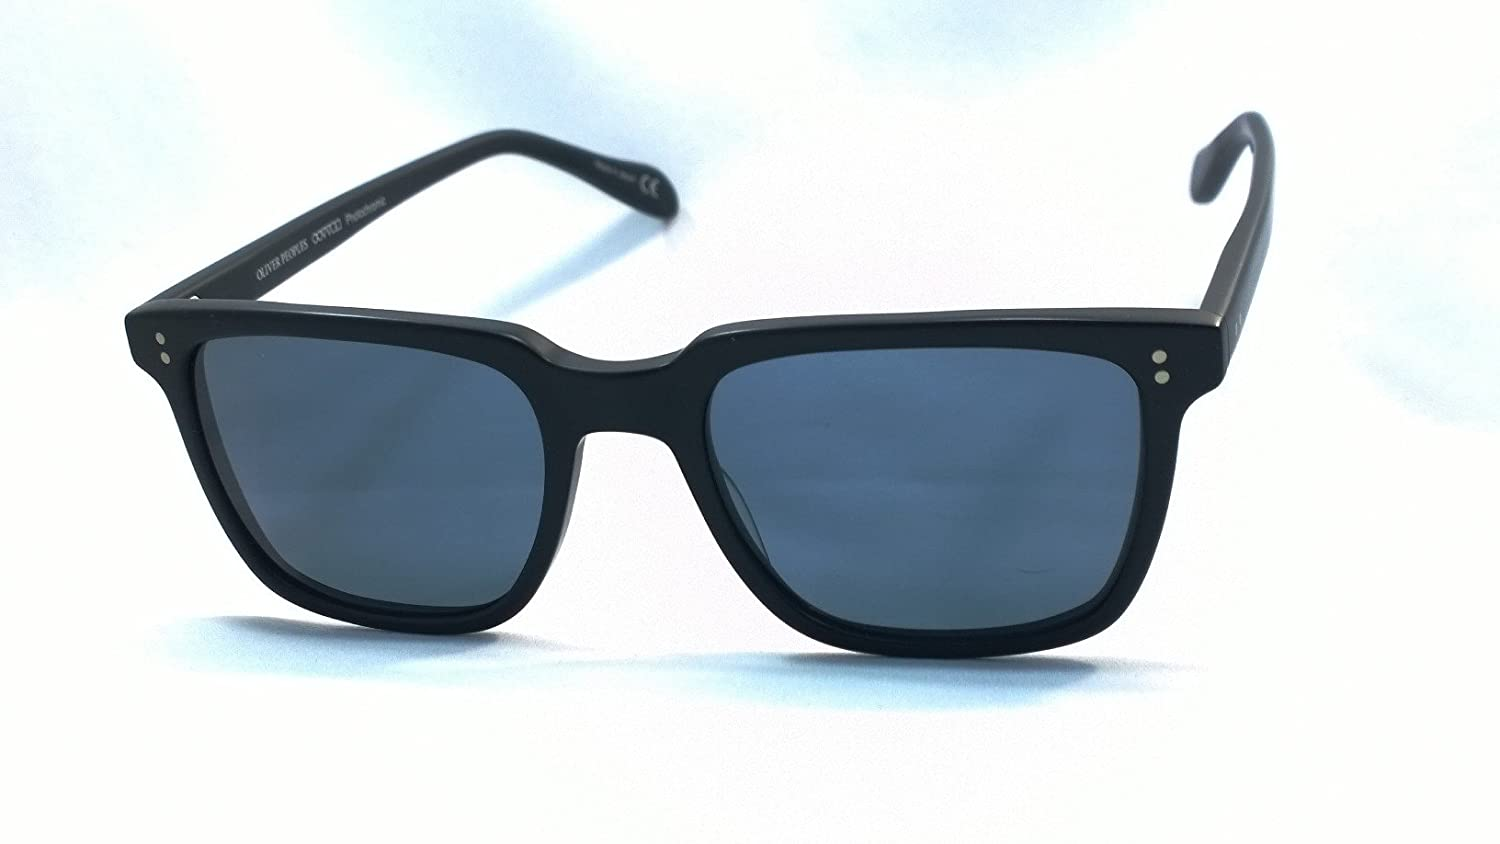 8bffe8970d2 Oliver Peoples Ov5031s Ndg-1 100% Authentic Men s Photocromic Sunglasses  Noir 1204 r8  Amazon.ca  Clothing   Accessories